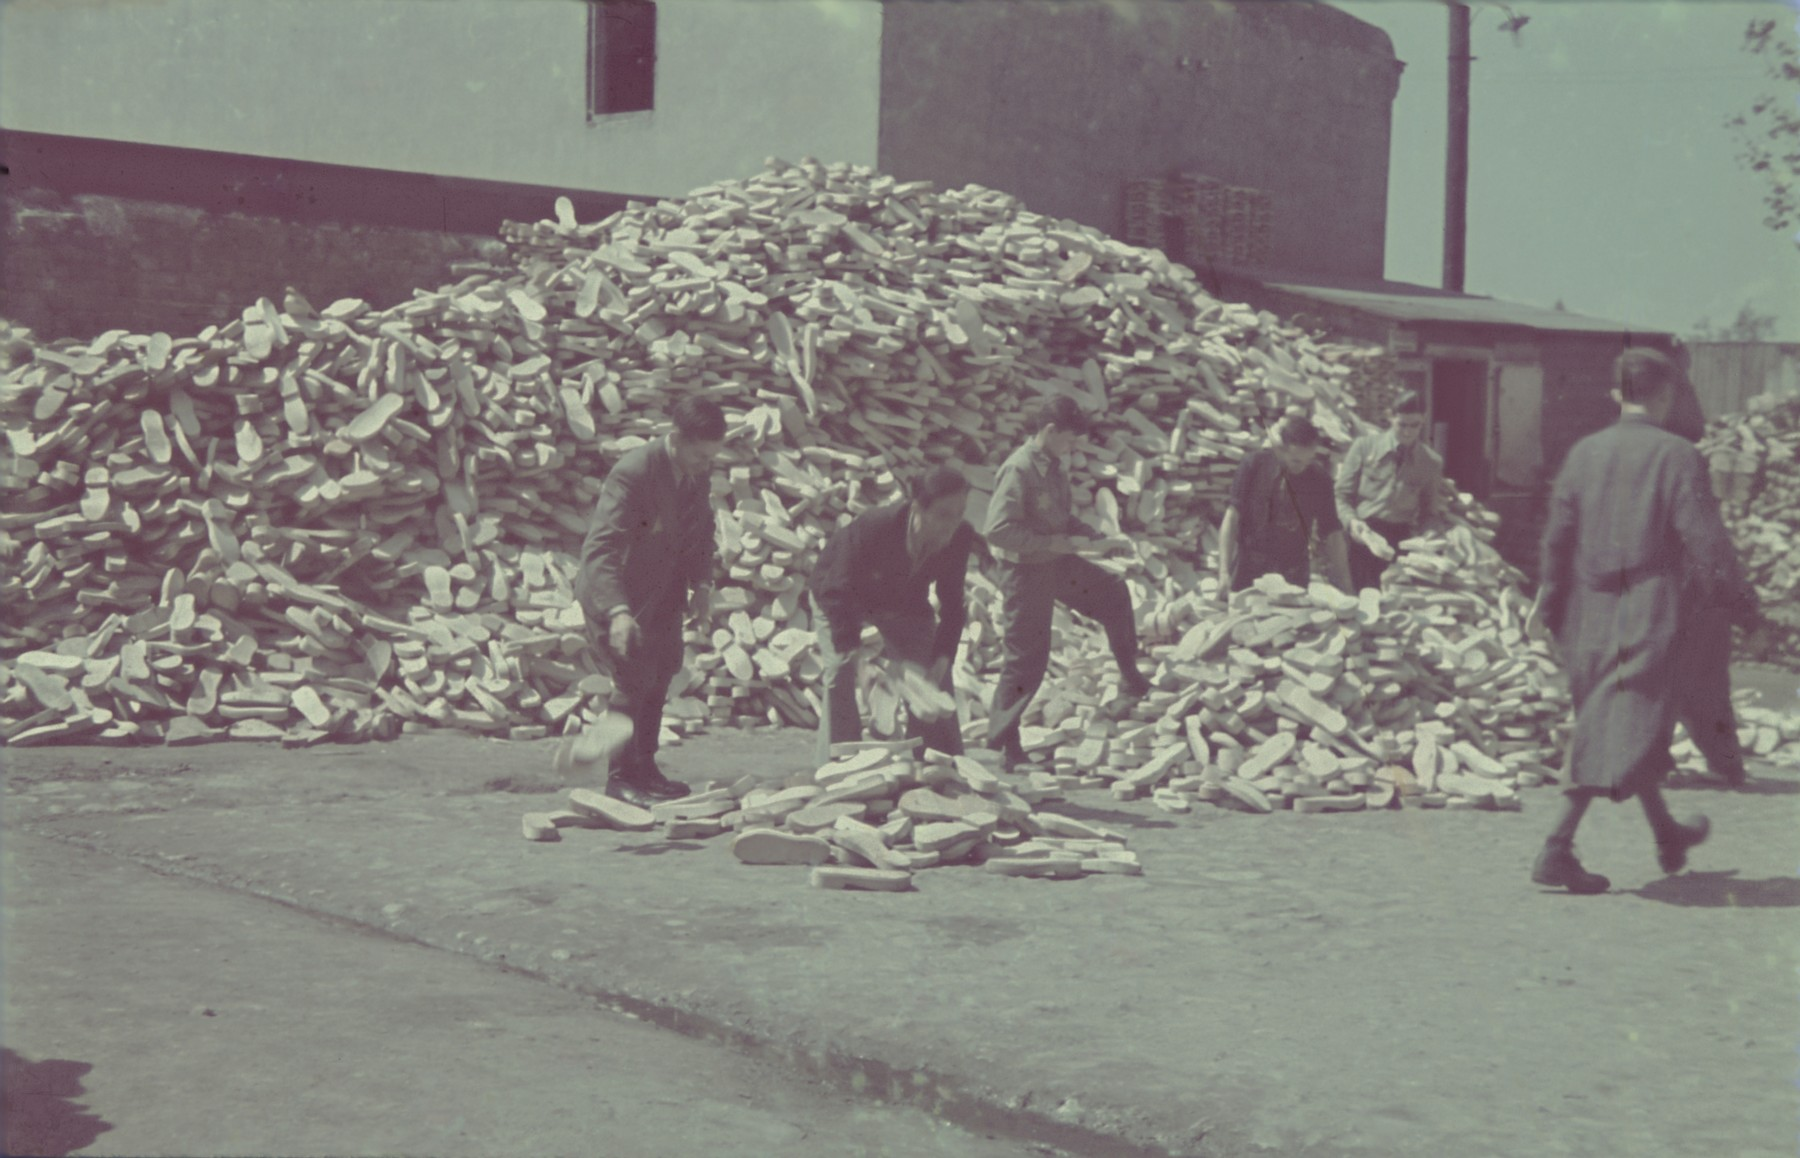 """Workers stack wooden soles in a large pile in the Lodz ghetto wooden shoe factory.  Original German caption: """"Litzmannstadt-Getto, Holzshcufabrik"""" (wooden shoe factory)."""